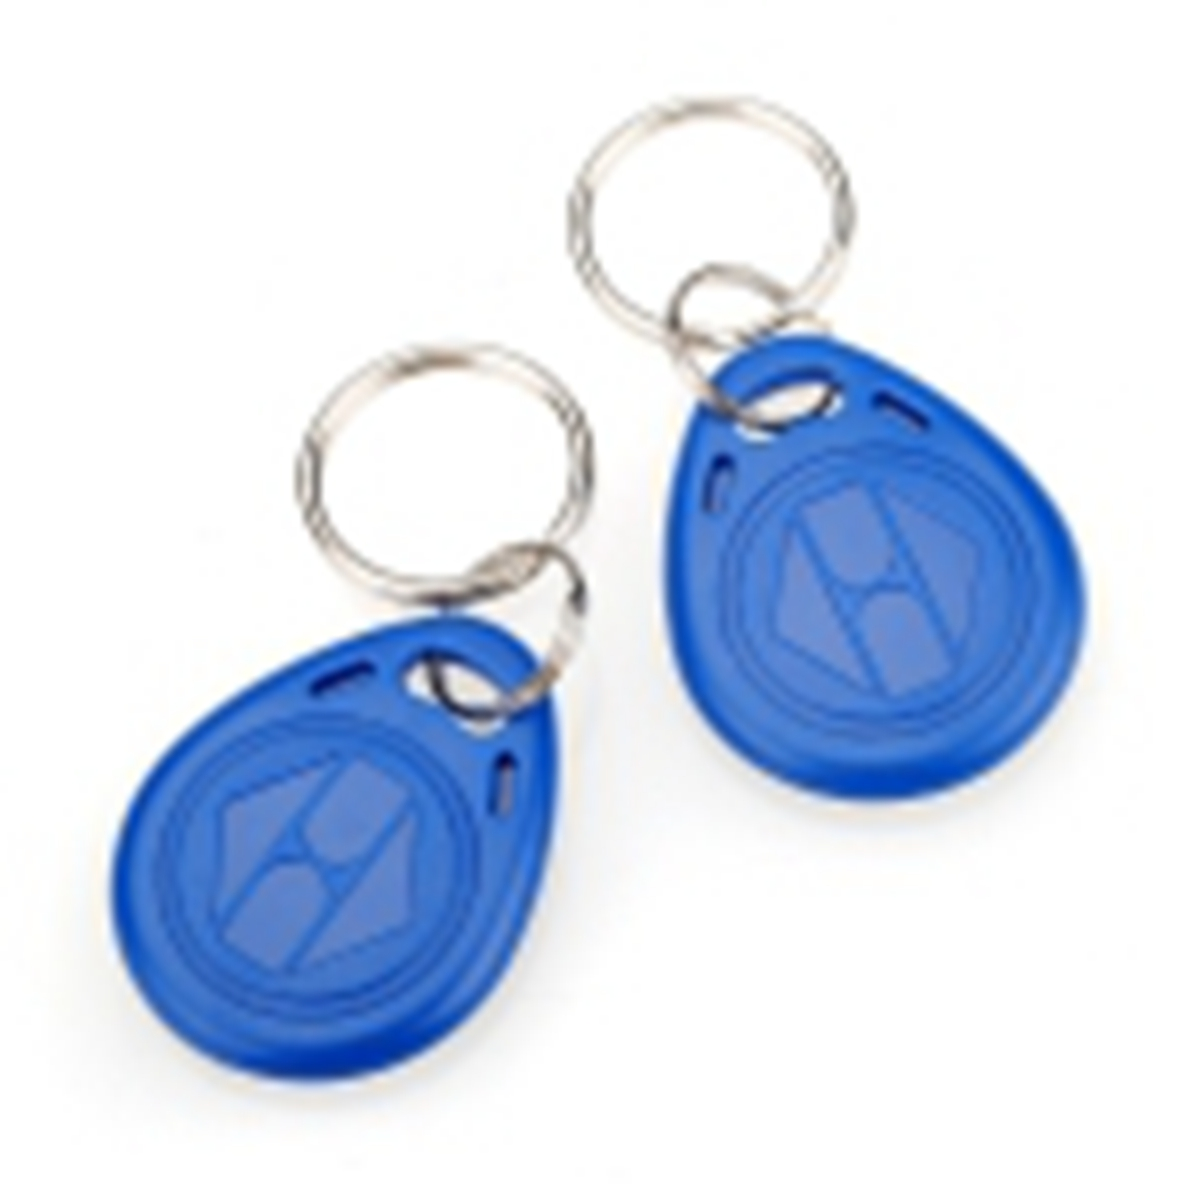 125kHz RFID  ID Token Tag Key  Proximity Keyfobs 1pcs Keychain Chain Plastic  For Access System